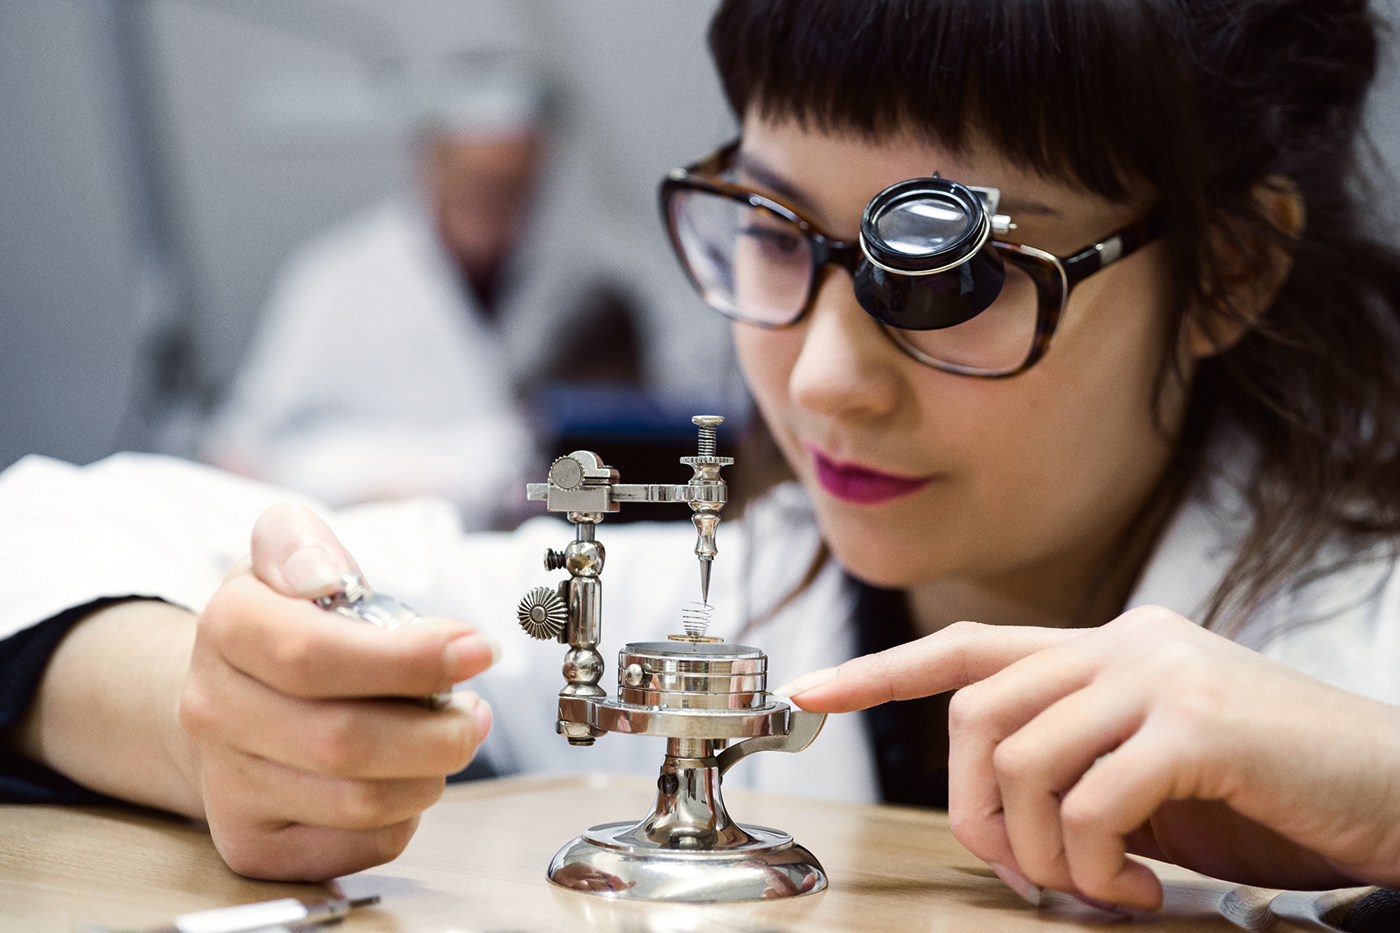 The Incredibly Detailed Watchmaking Art - Watchmaker School horlogerie The Detailed Watchmaking Art in Haute Horlogerie The Incredibly Detailed Watchmaking Art Watchmaker School